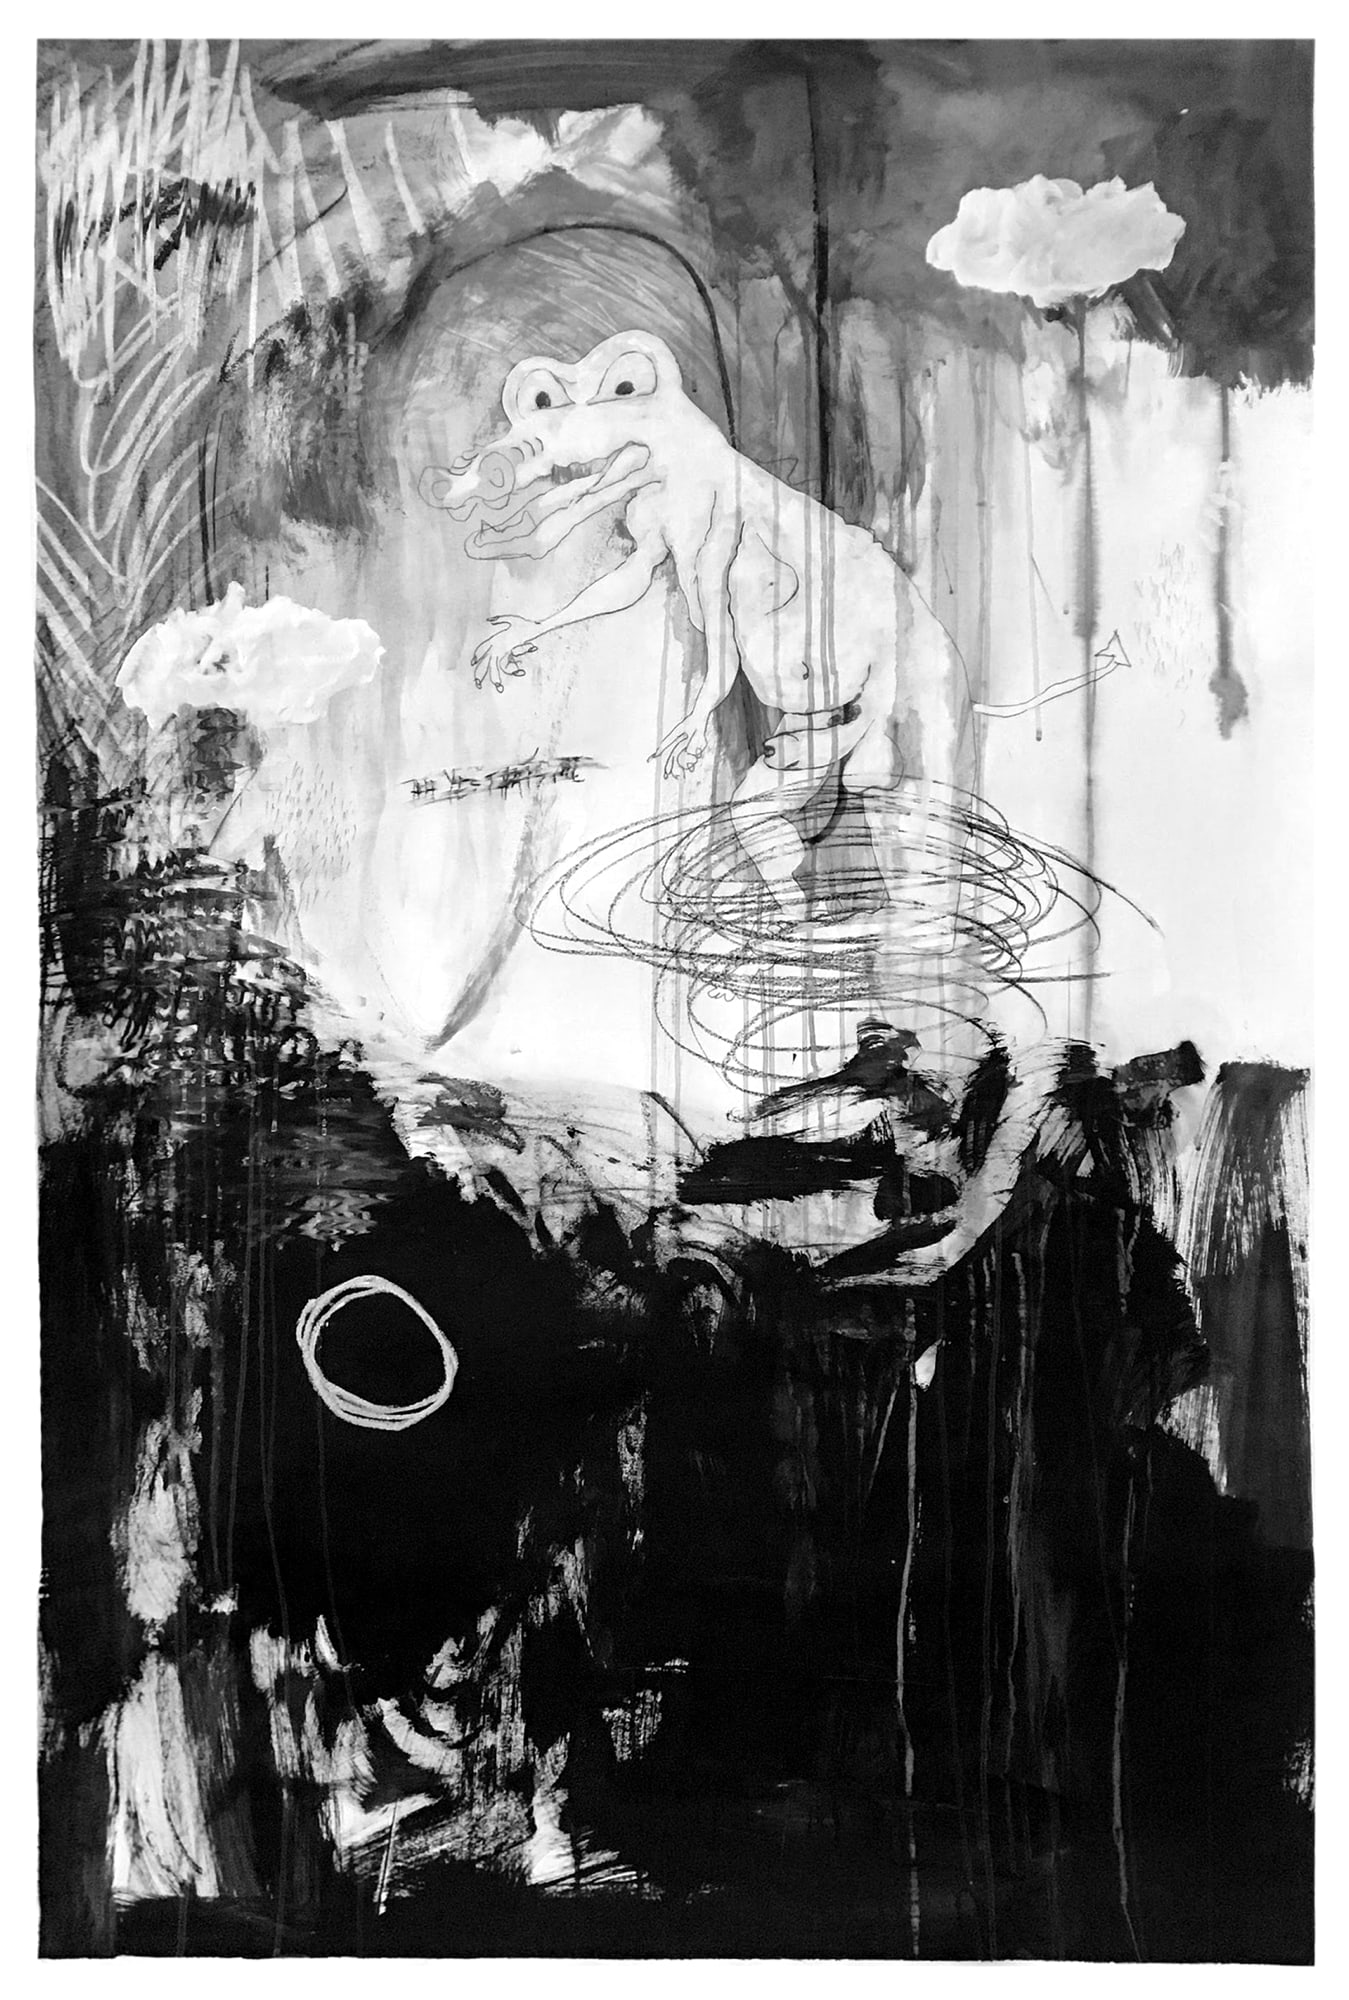 Me as an alligator  Charcoal, gesso on paper 100 x 150 cm